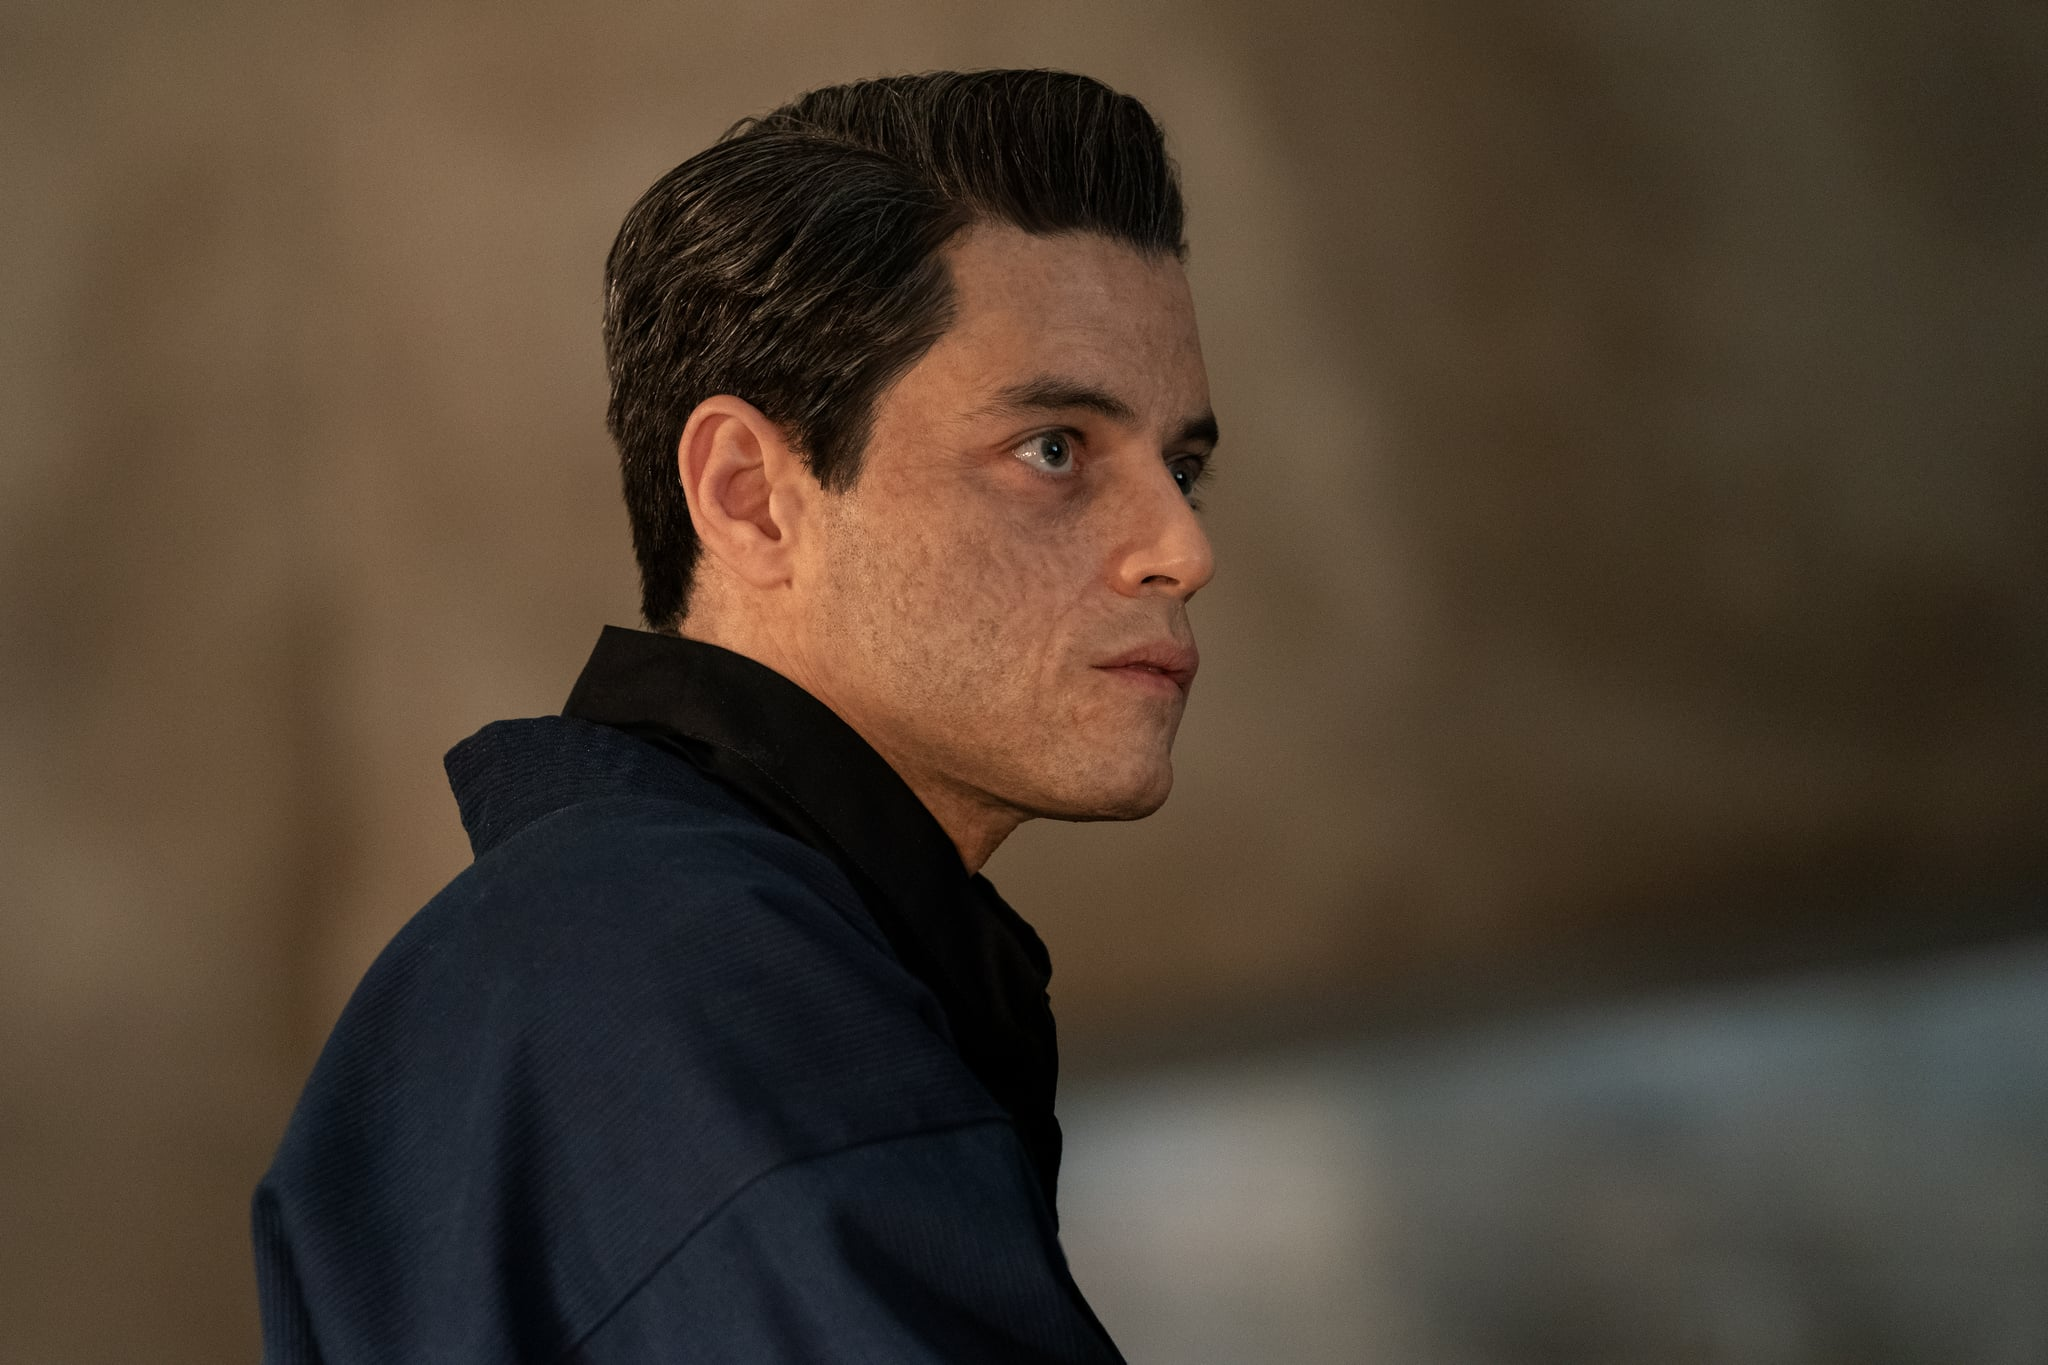 B25_25403_RCSafin (Rami Malek) inNO TIME TO DIE, a DANJAQ and Metro Goldwyn Mayer Pictures film.Credit: Nicola Dove© 2019 DANJAQ, LLC AND MGM.  ALL RIGHTS RESERVED.